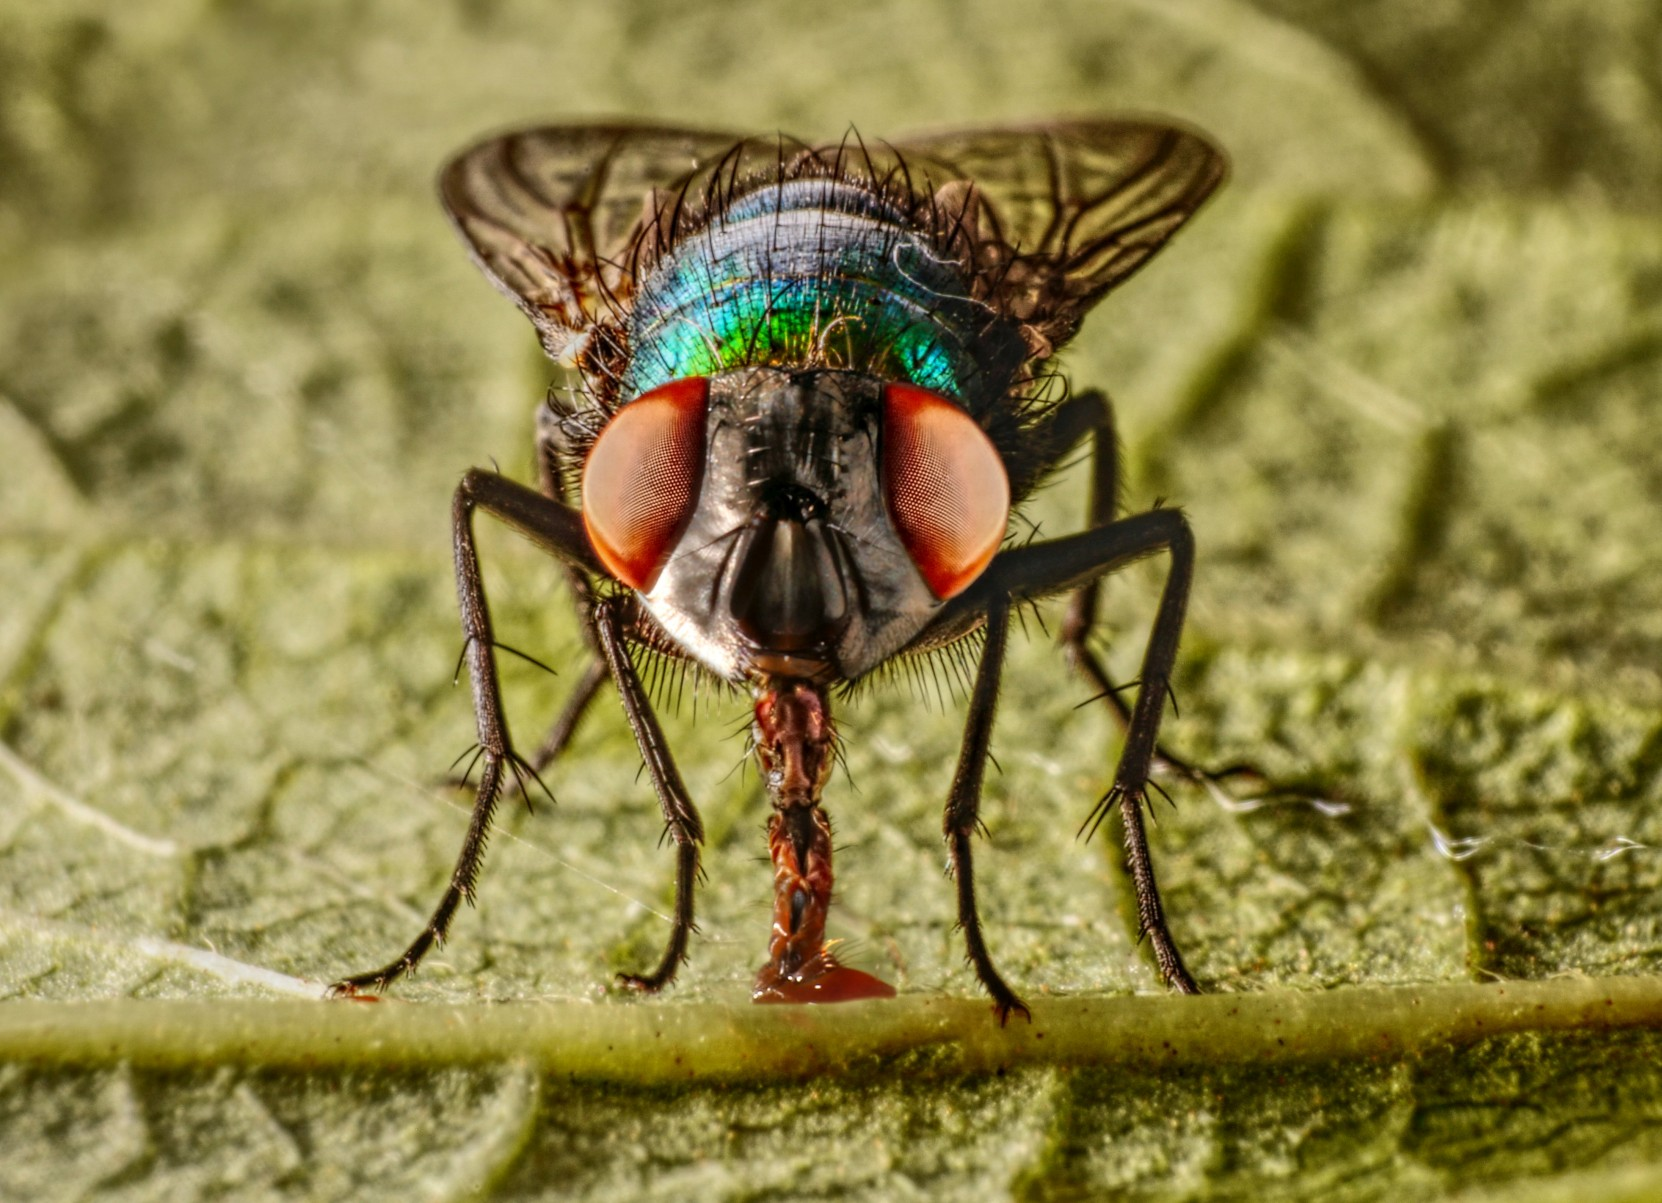 3rd Place - Fly's Eyes - Jonathan Orland